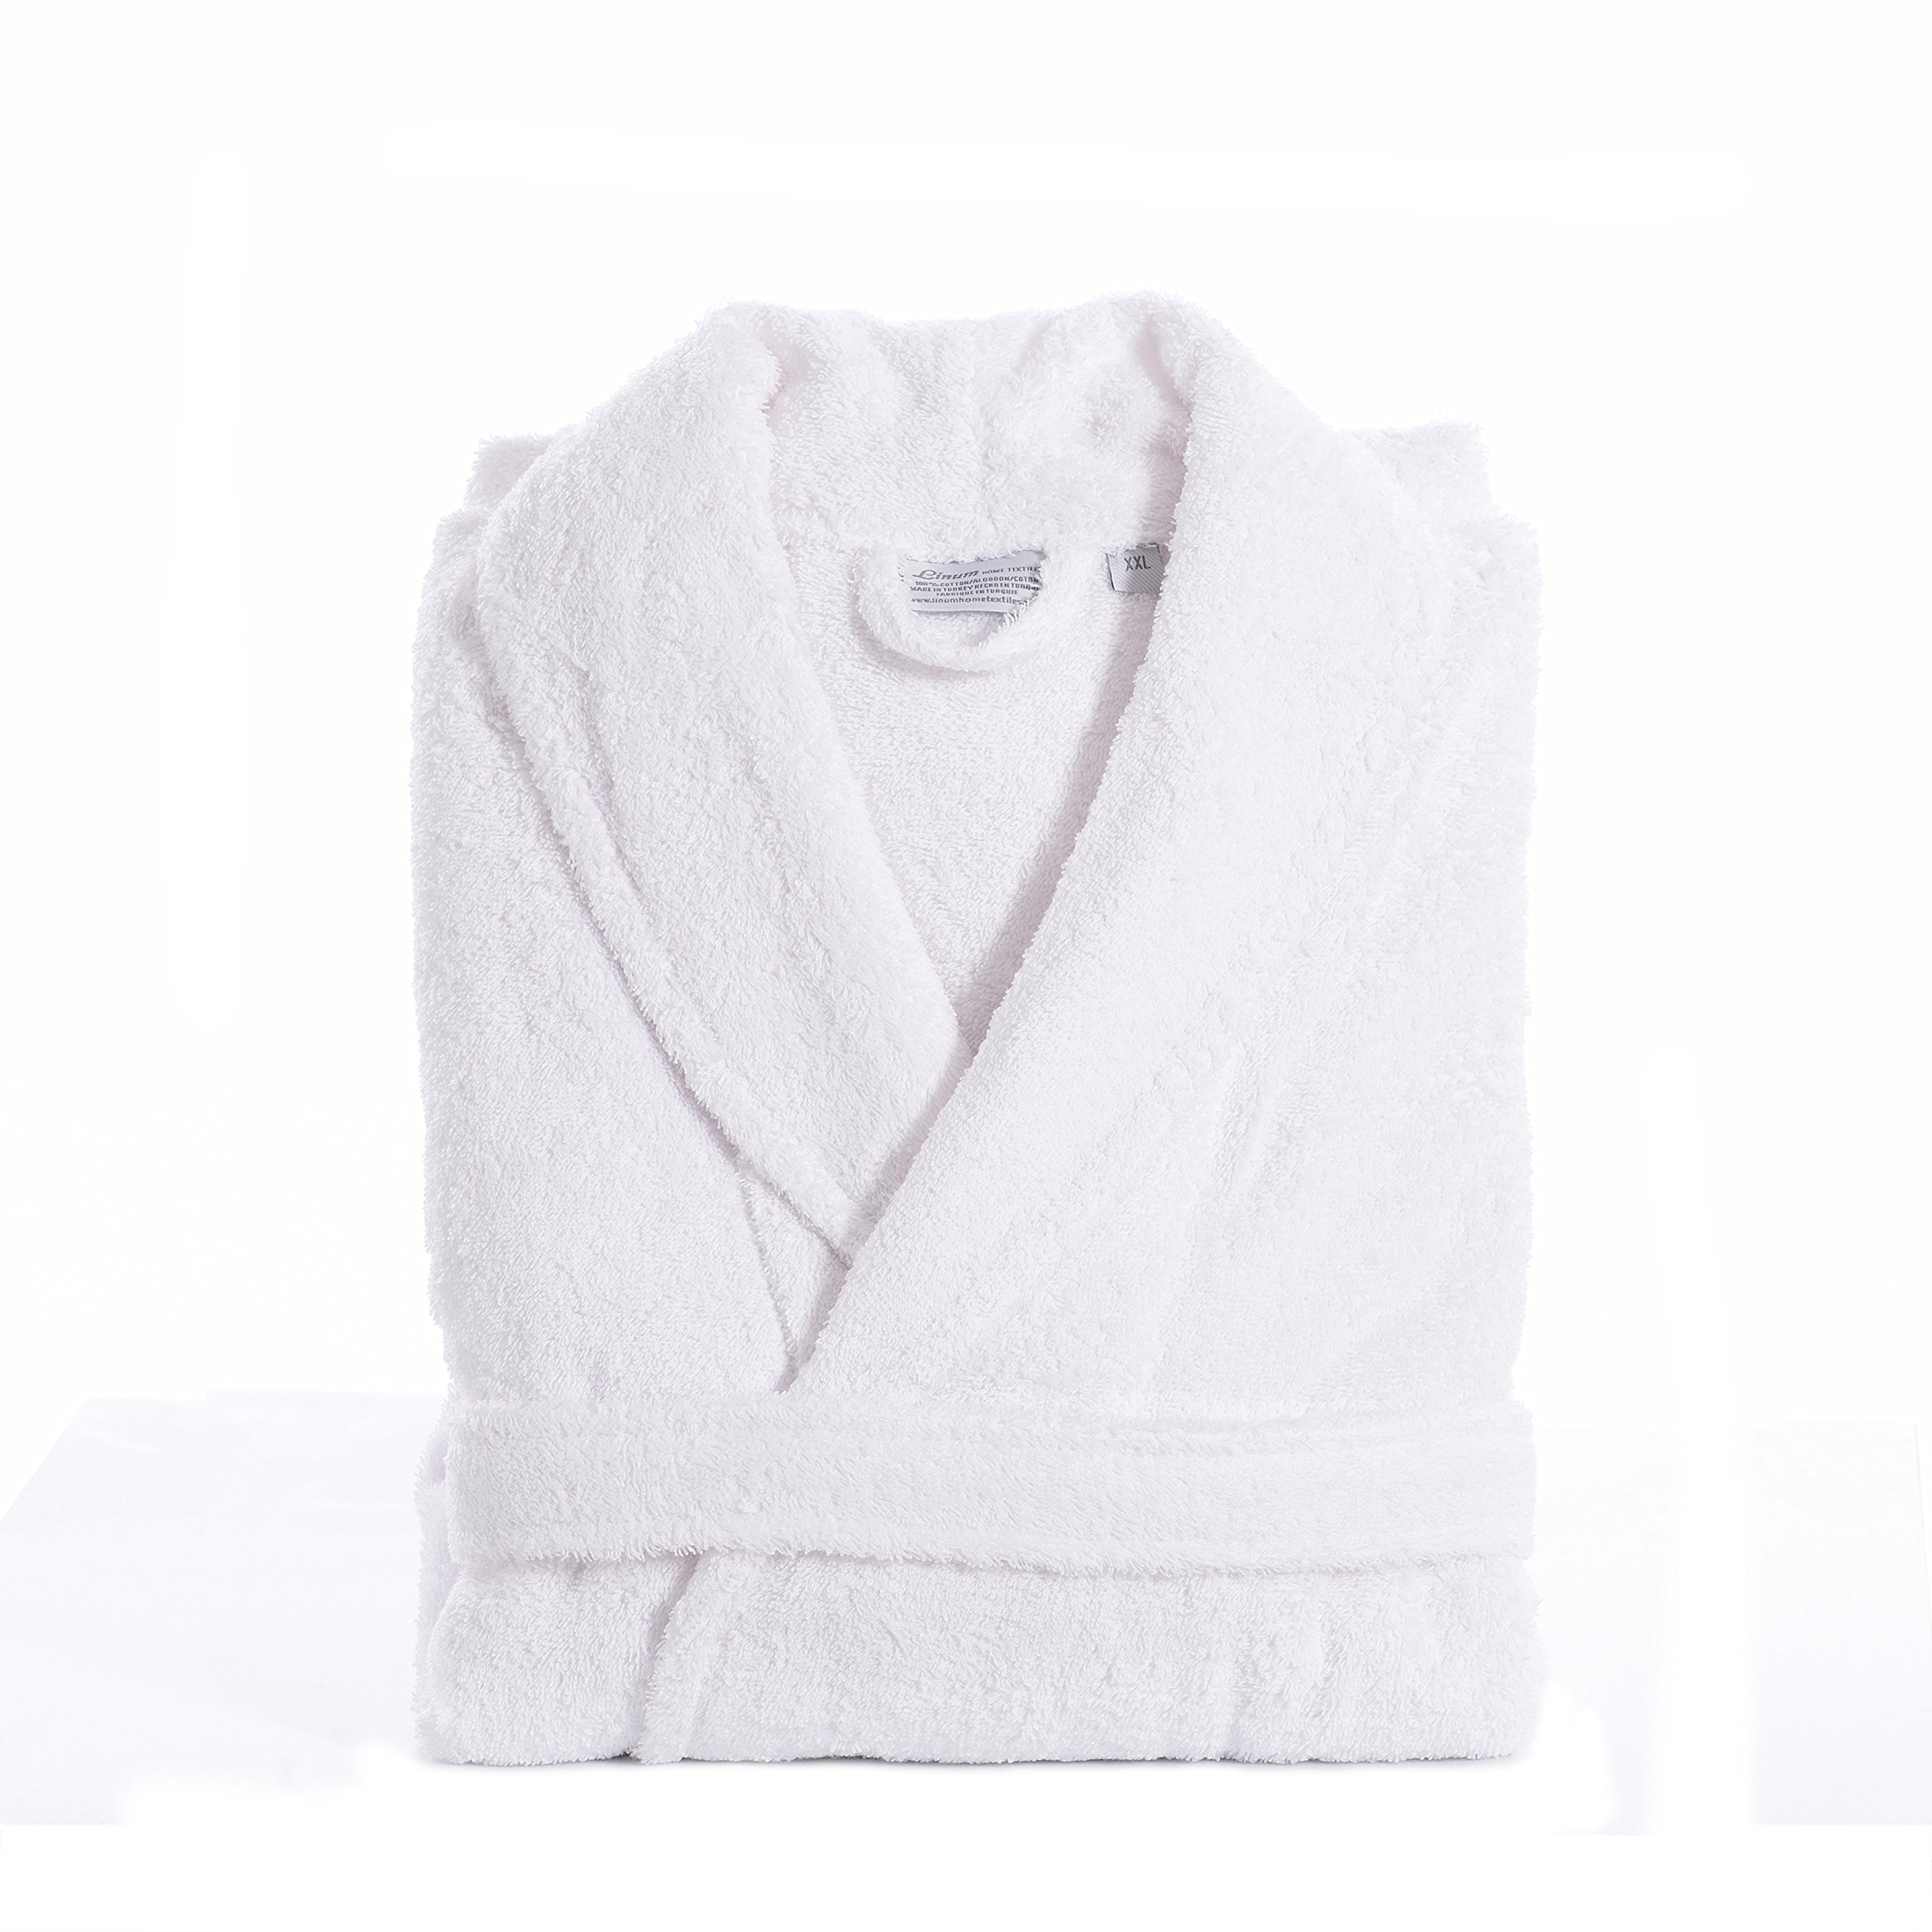 Linum Home Textiles 100% Turkish Cotton Unisex Terry Cloth Bathrobe, White, Large/XL